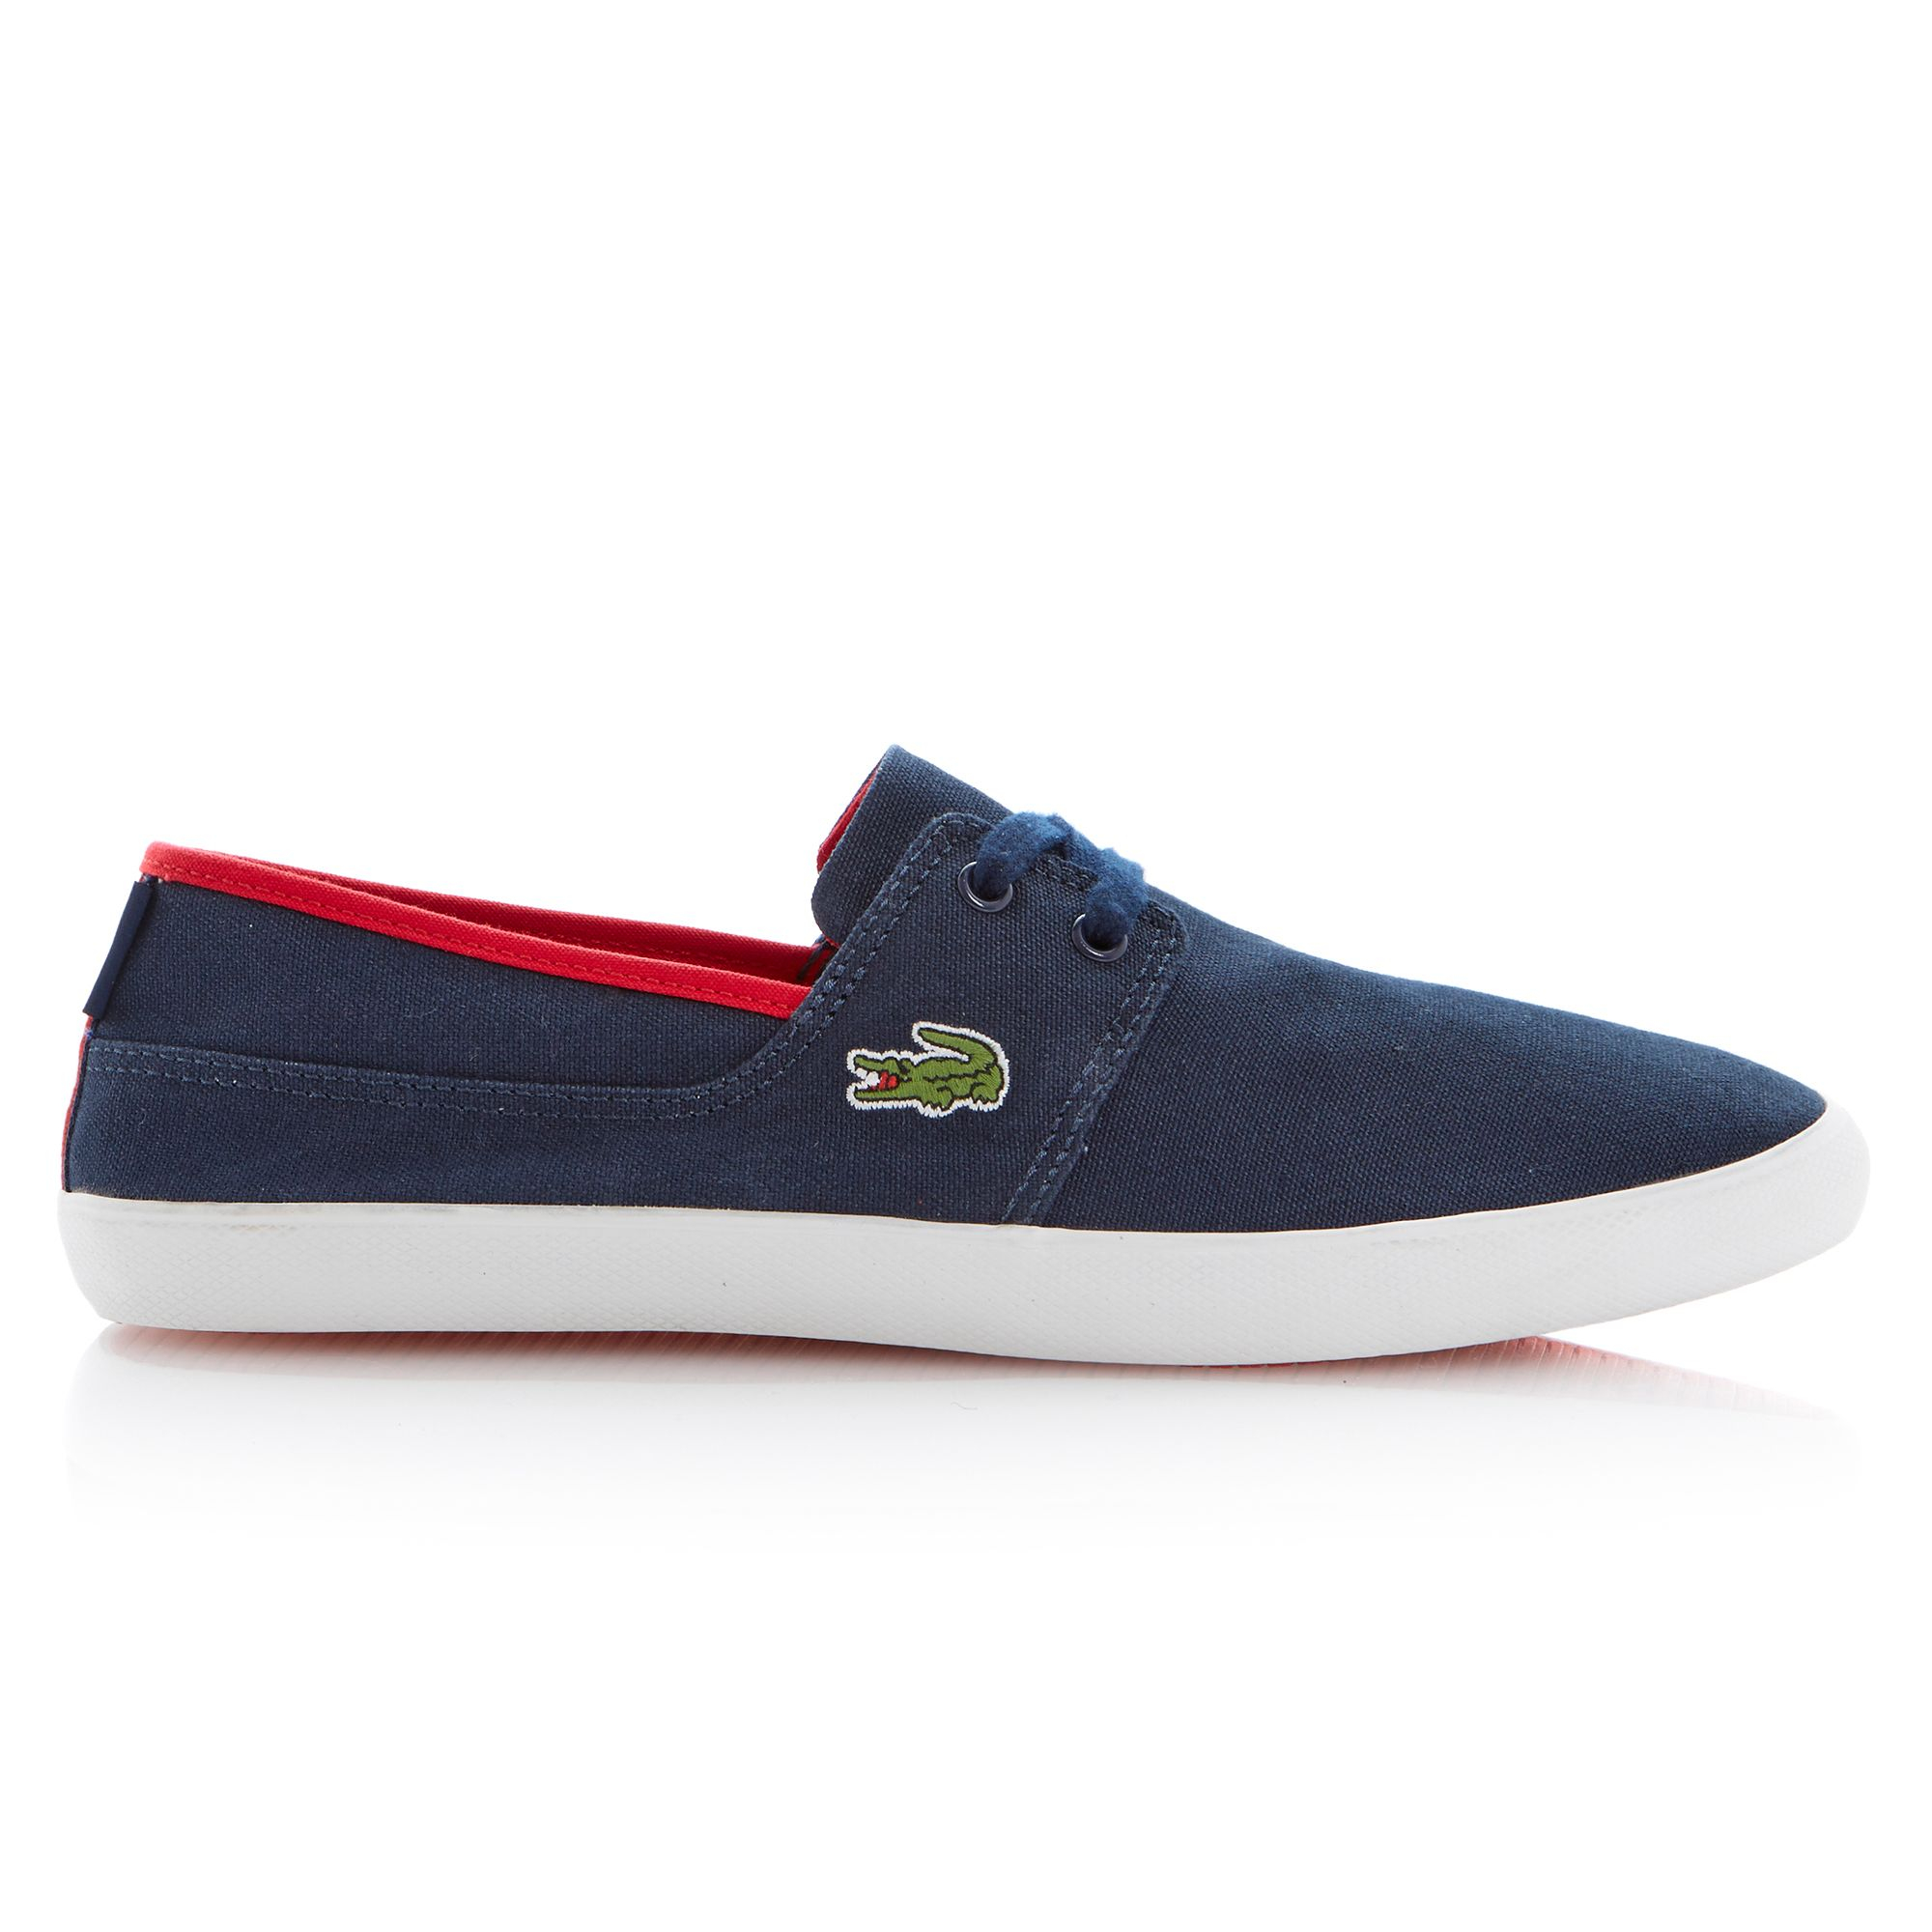 Marice Lace Boat Shoes